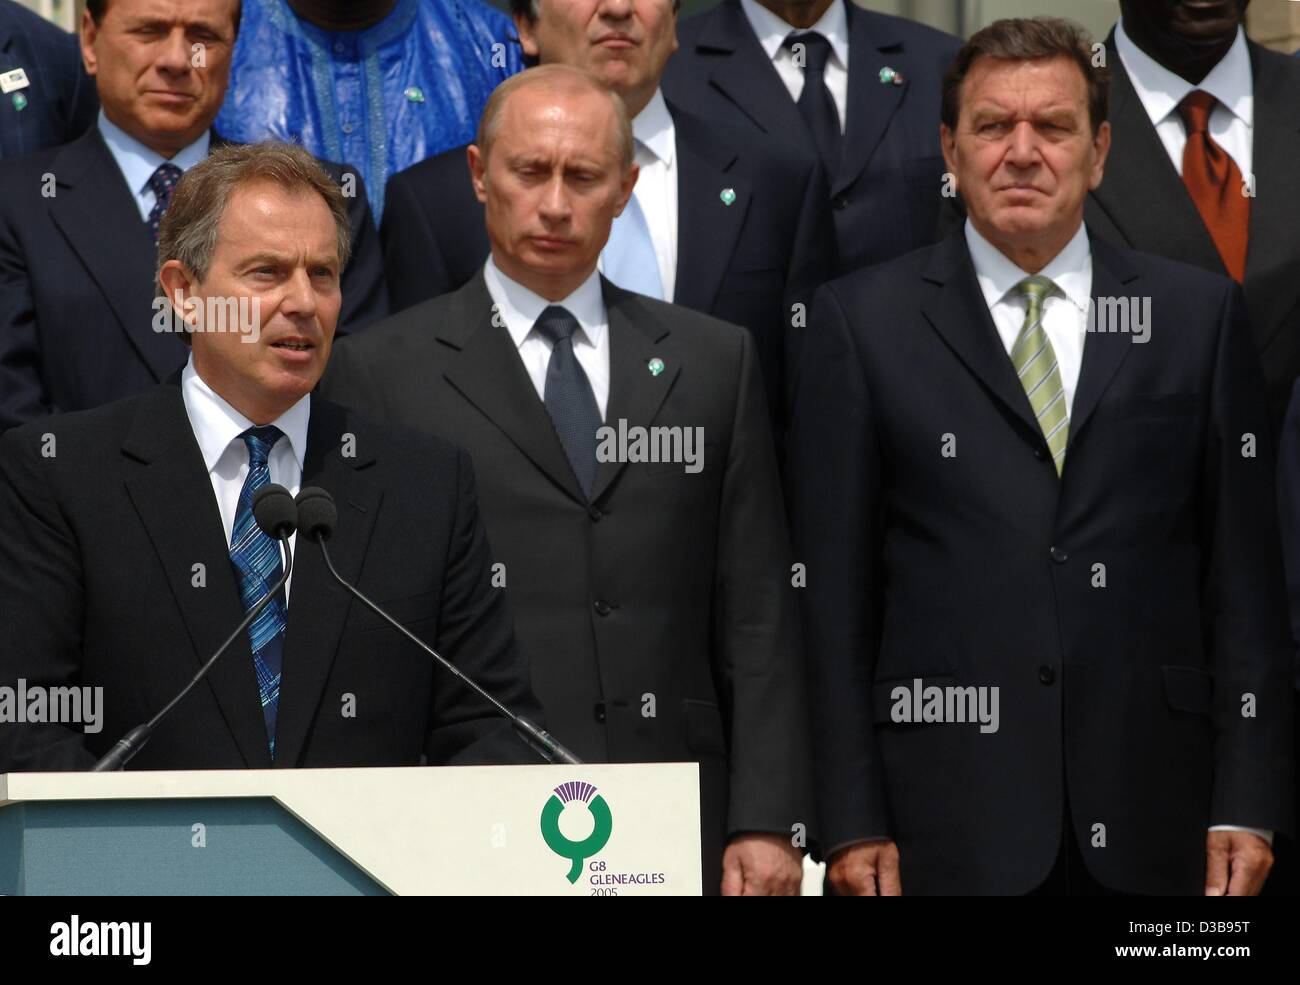 British Prime Minister Tony Blair (front) makes a statement prior to the family portrait of the G8 Summit at the Stock Photo